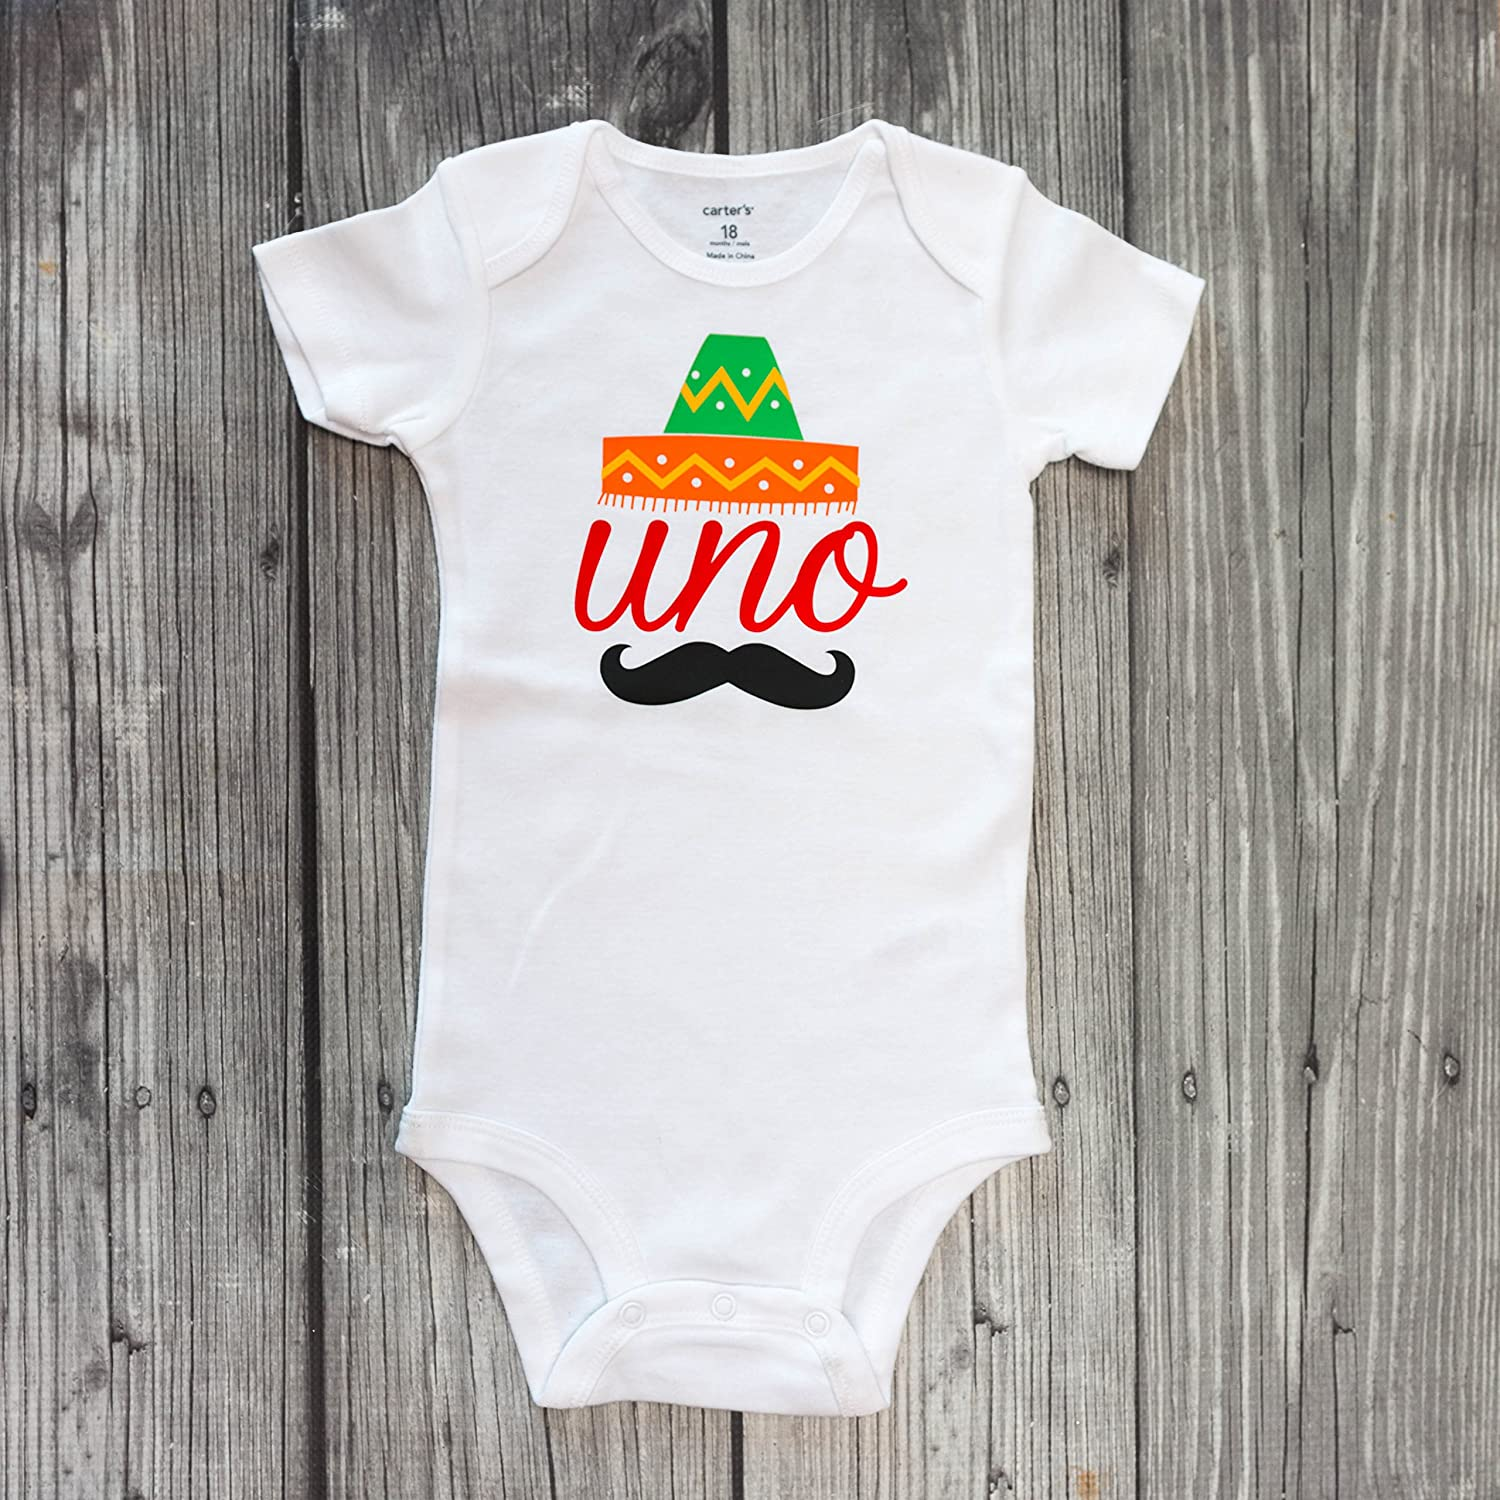 Uno bodysuit - fiesta bodysuit - fiesta party - sombrero bodysuit - boy first birthday - fiesta time - first birthday - birthday outfit - birthday shirt